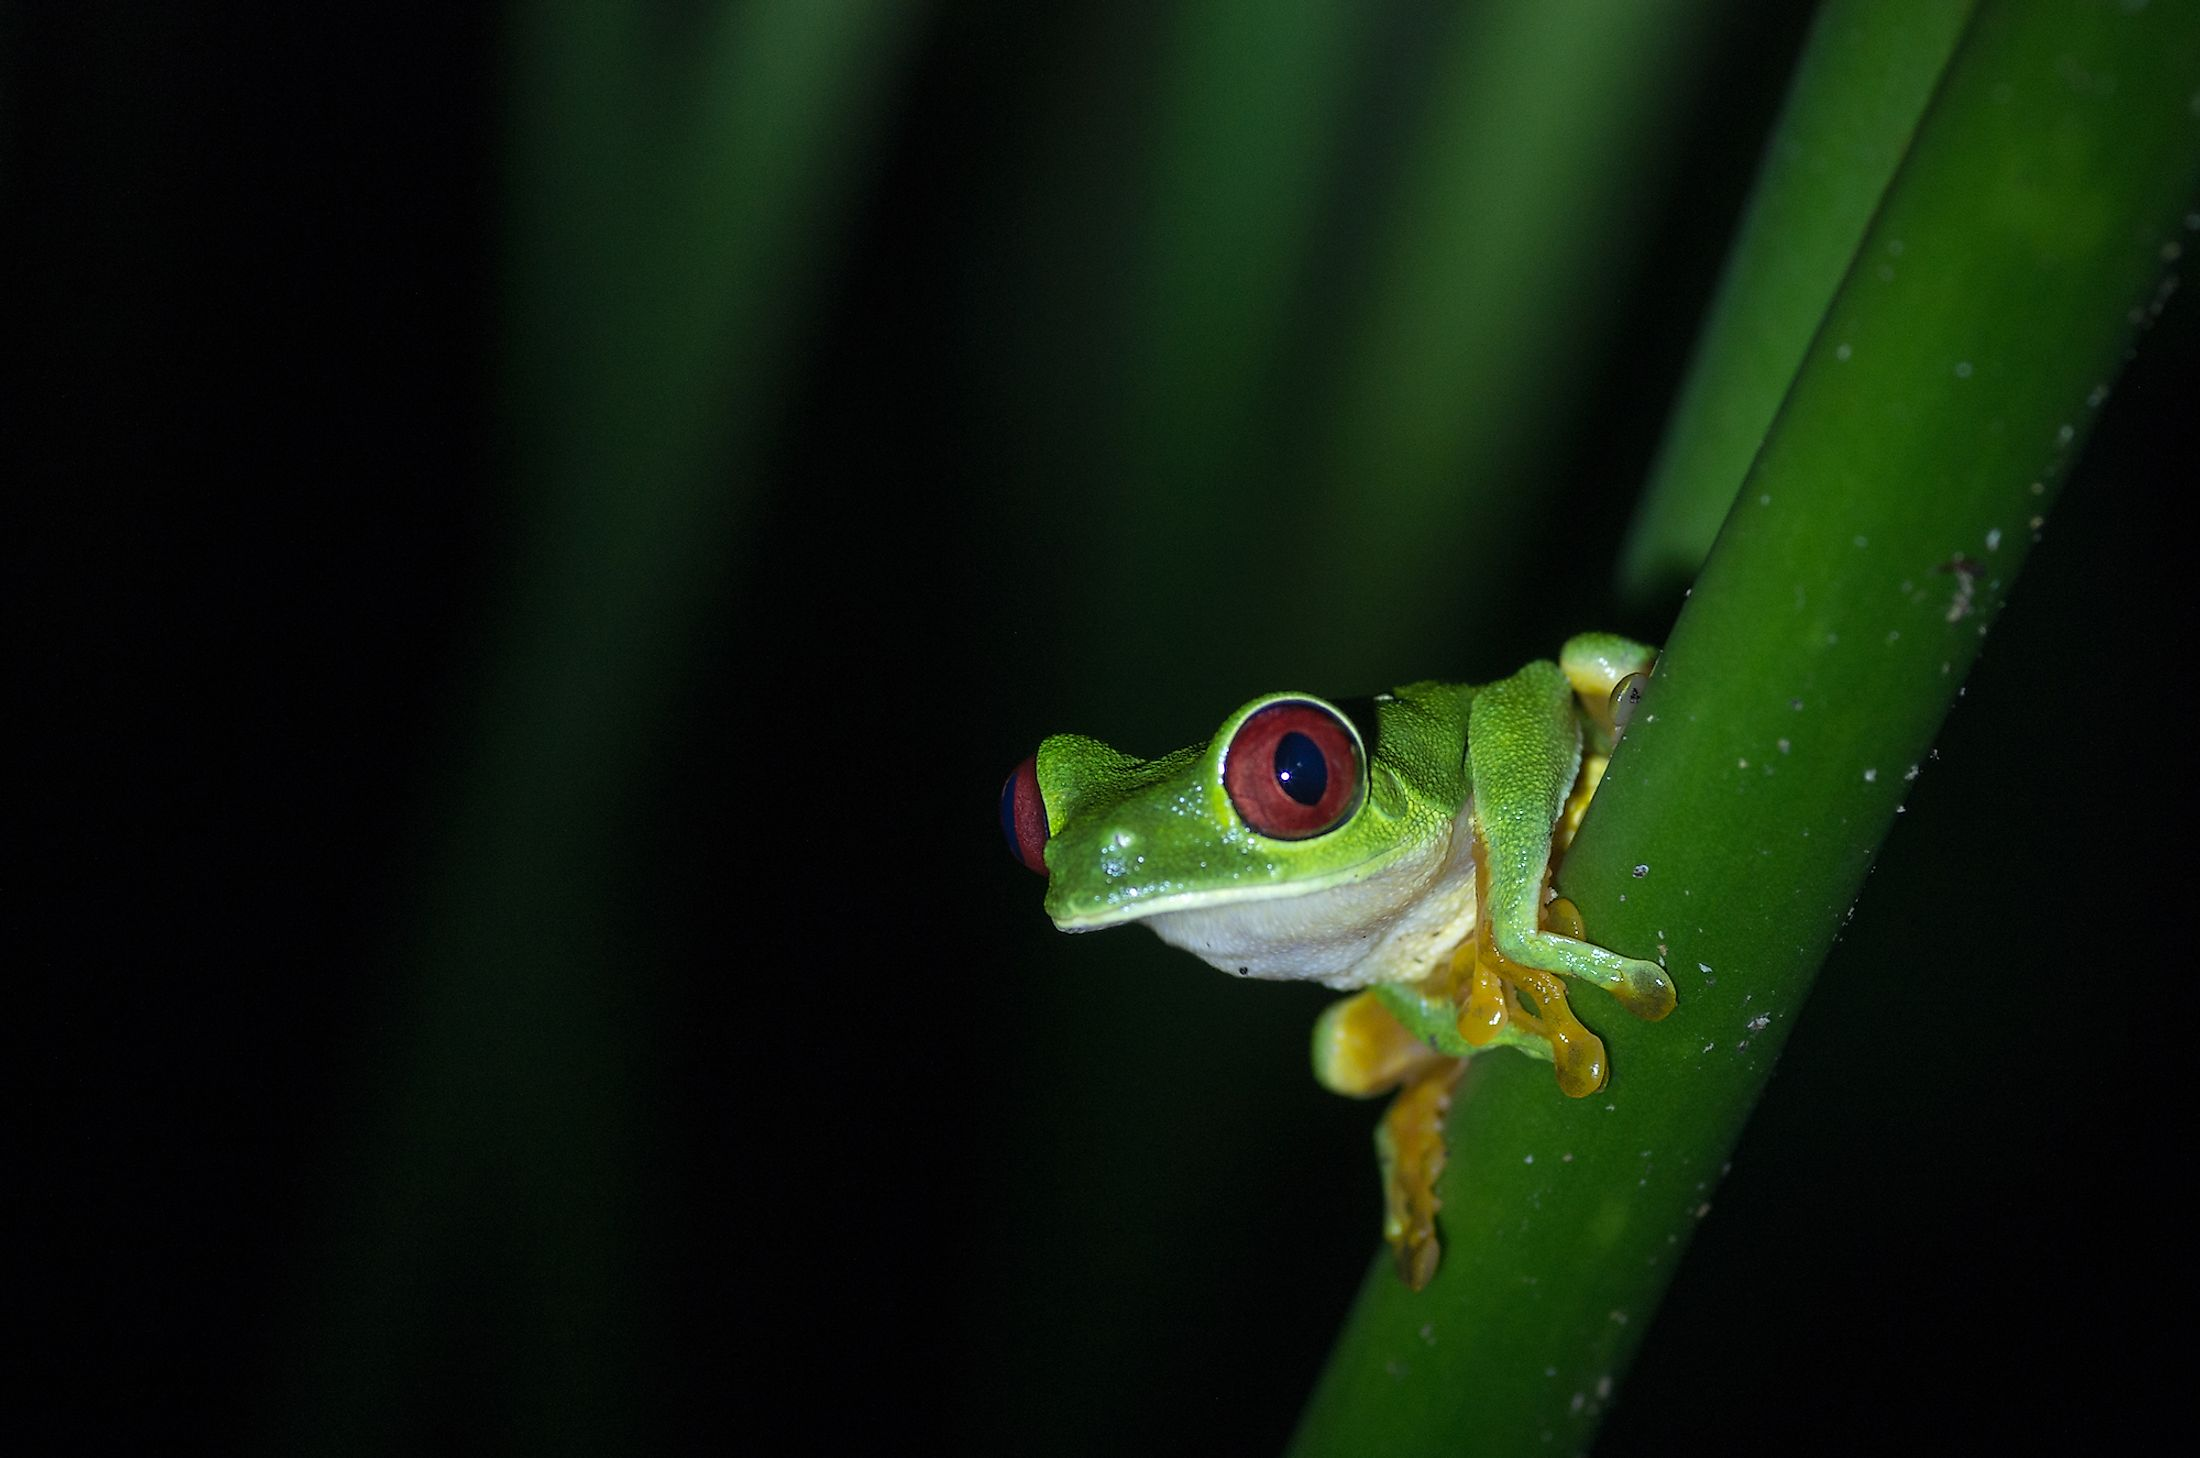 A tree frog. Image credit: Bartholo/Shutterstock.com